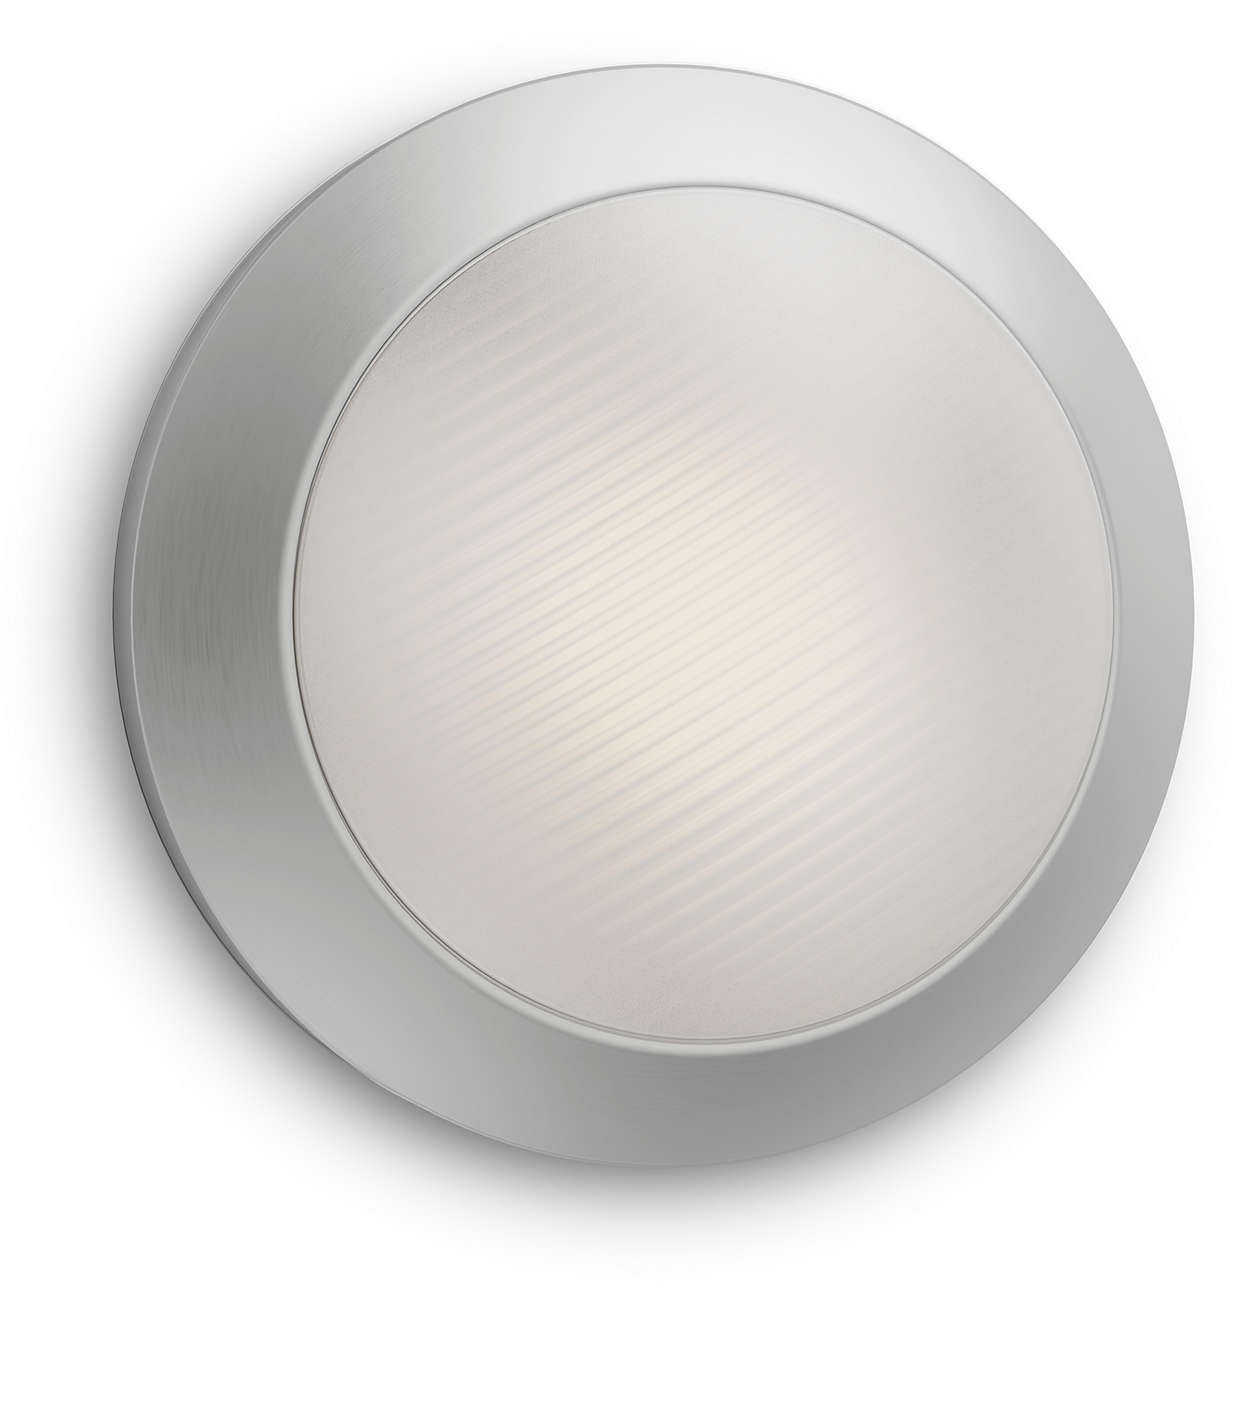 Philips Buitenverlichting Led Mygarden Halo 172914716 Philips Buitenverlichting Led